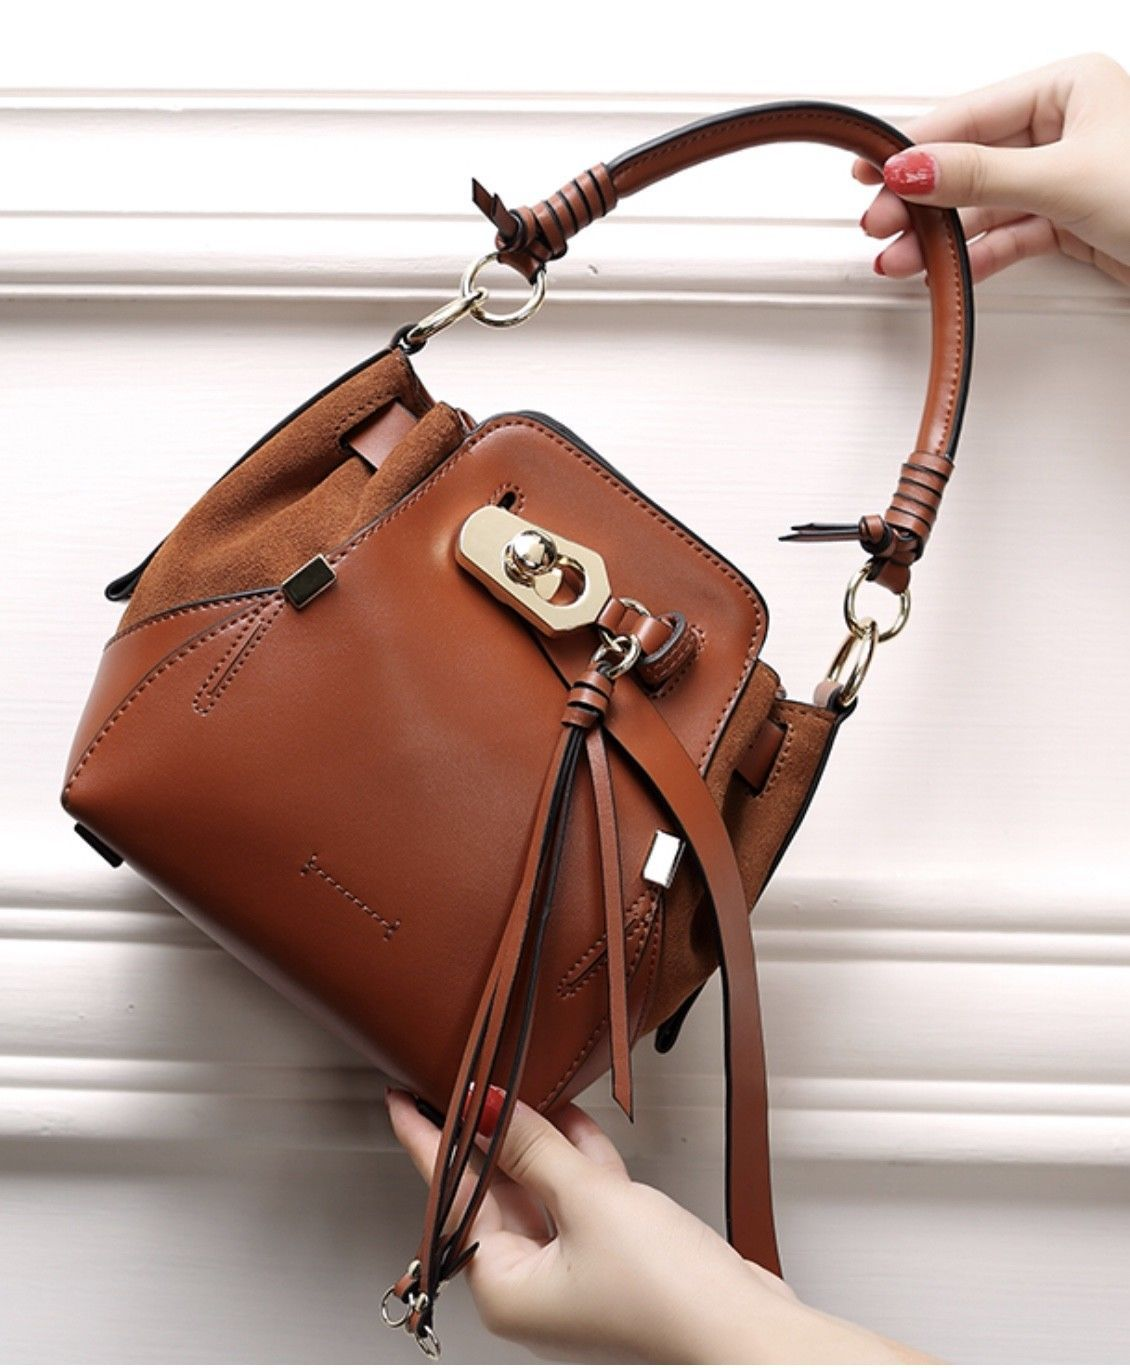 Italian Leather & Suede Drawstring Shoulder Bag Crossbody Handbag Purse 2469